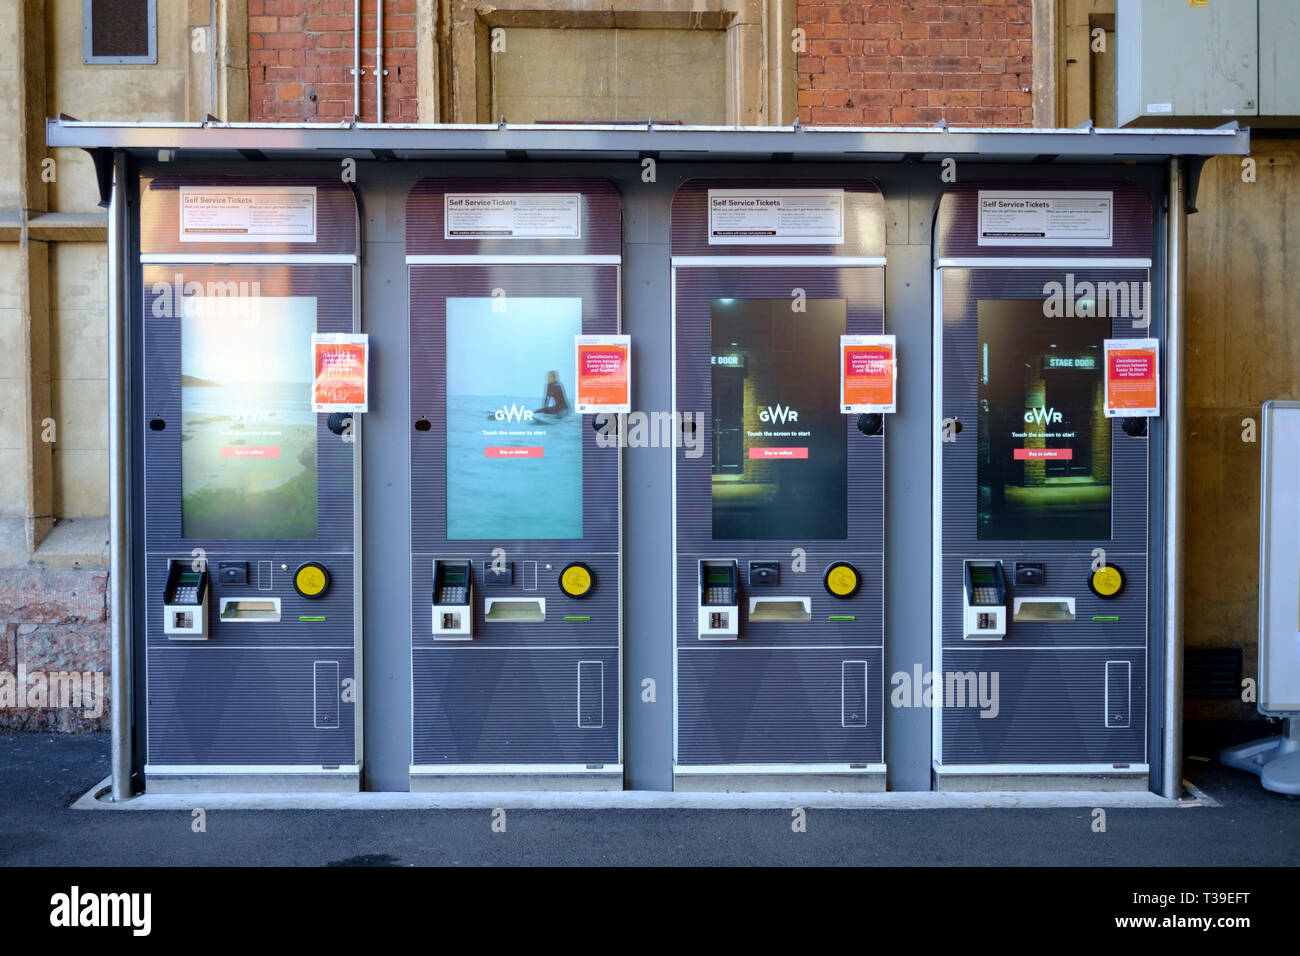 Temple Meads Station Bristol Automatic GWR ticket machines Stock Photo